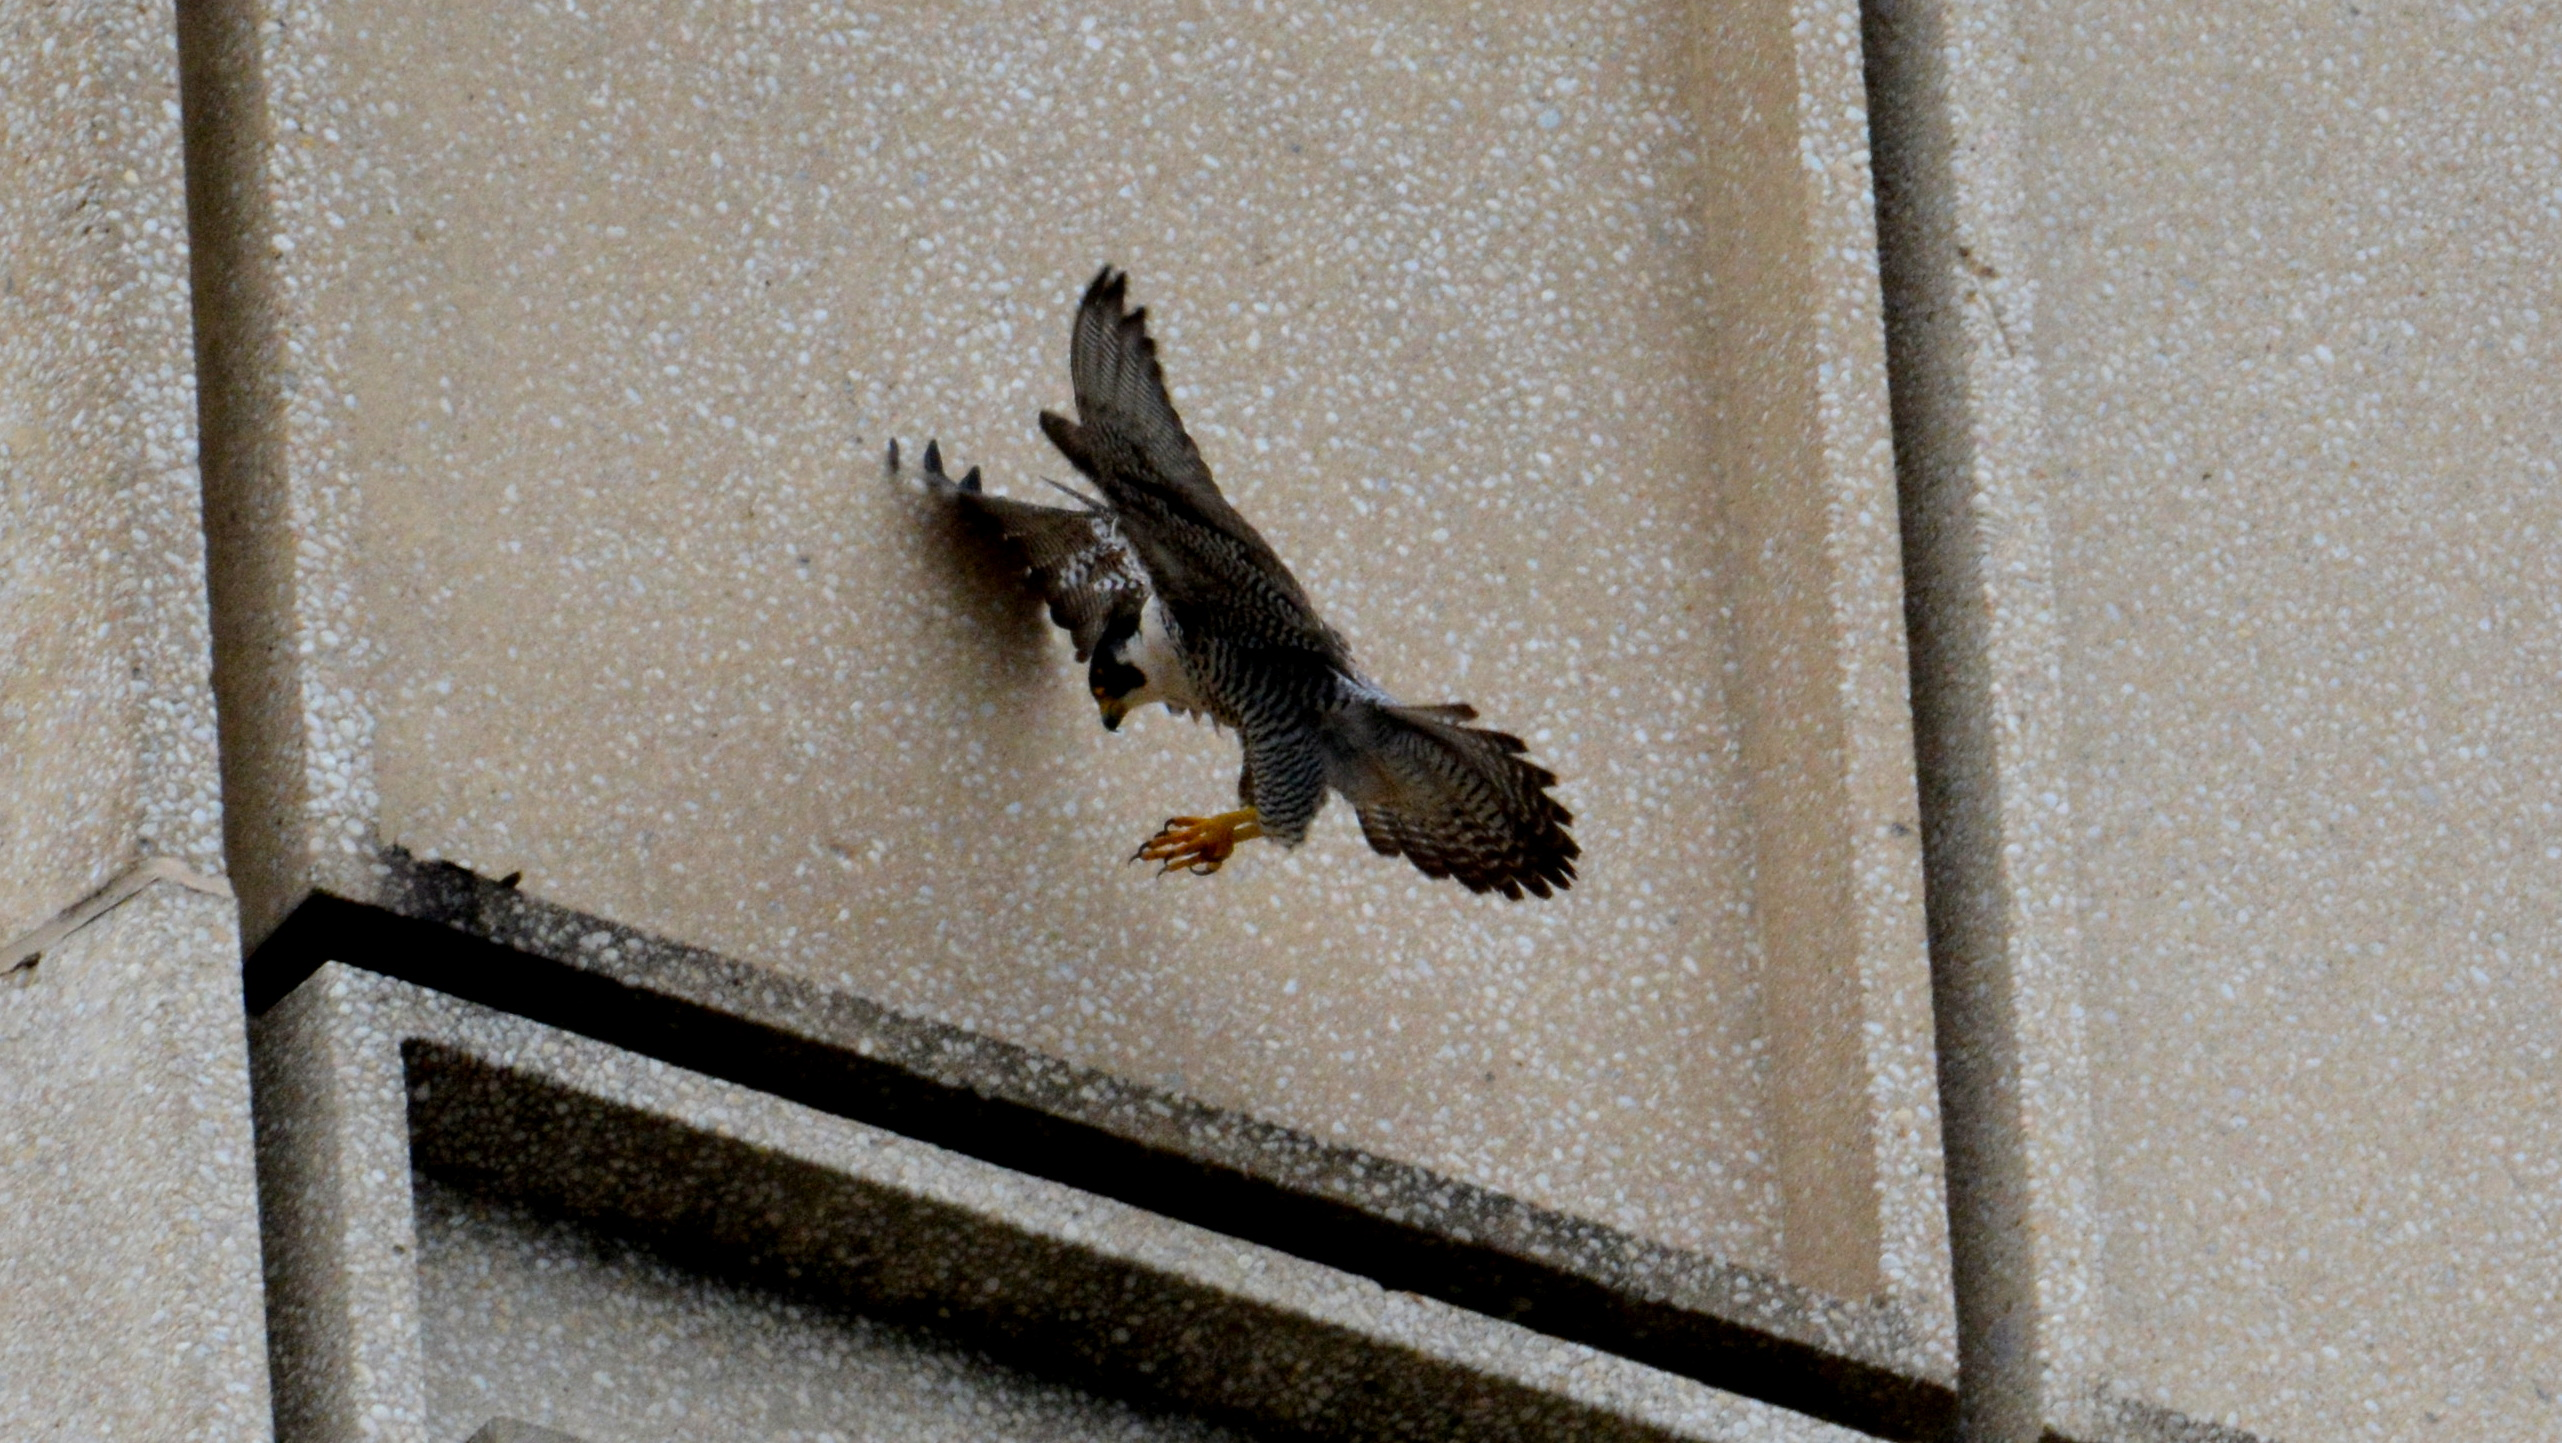 coming in for a landing on the State Building